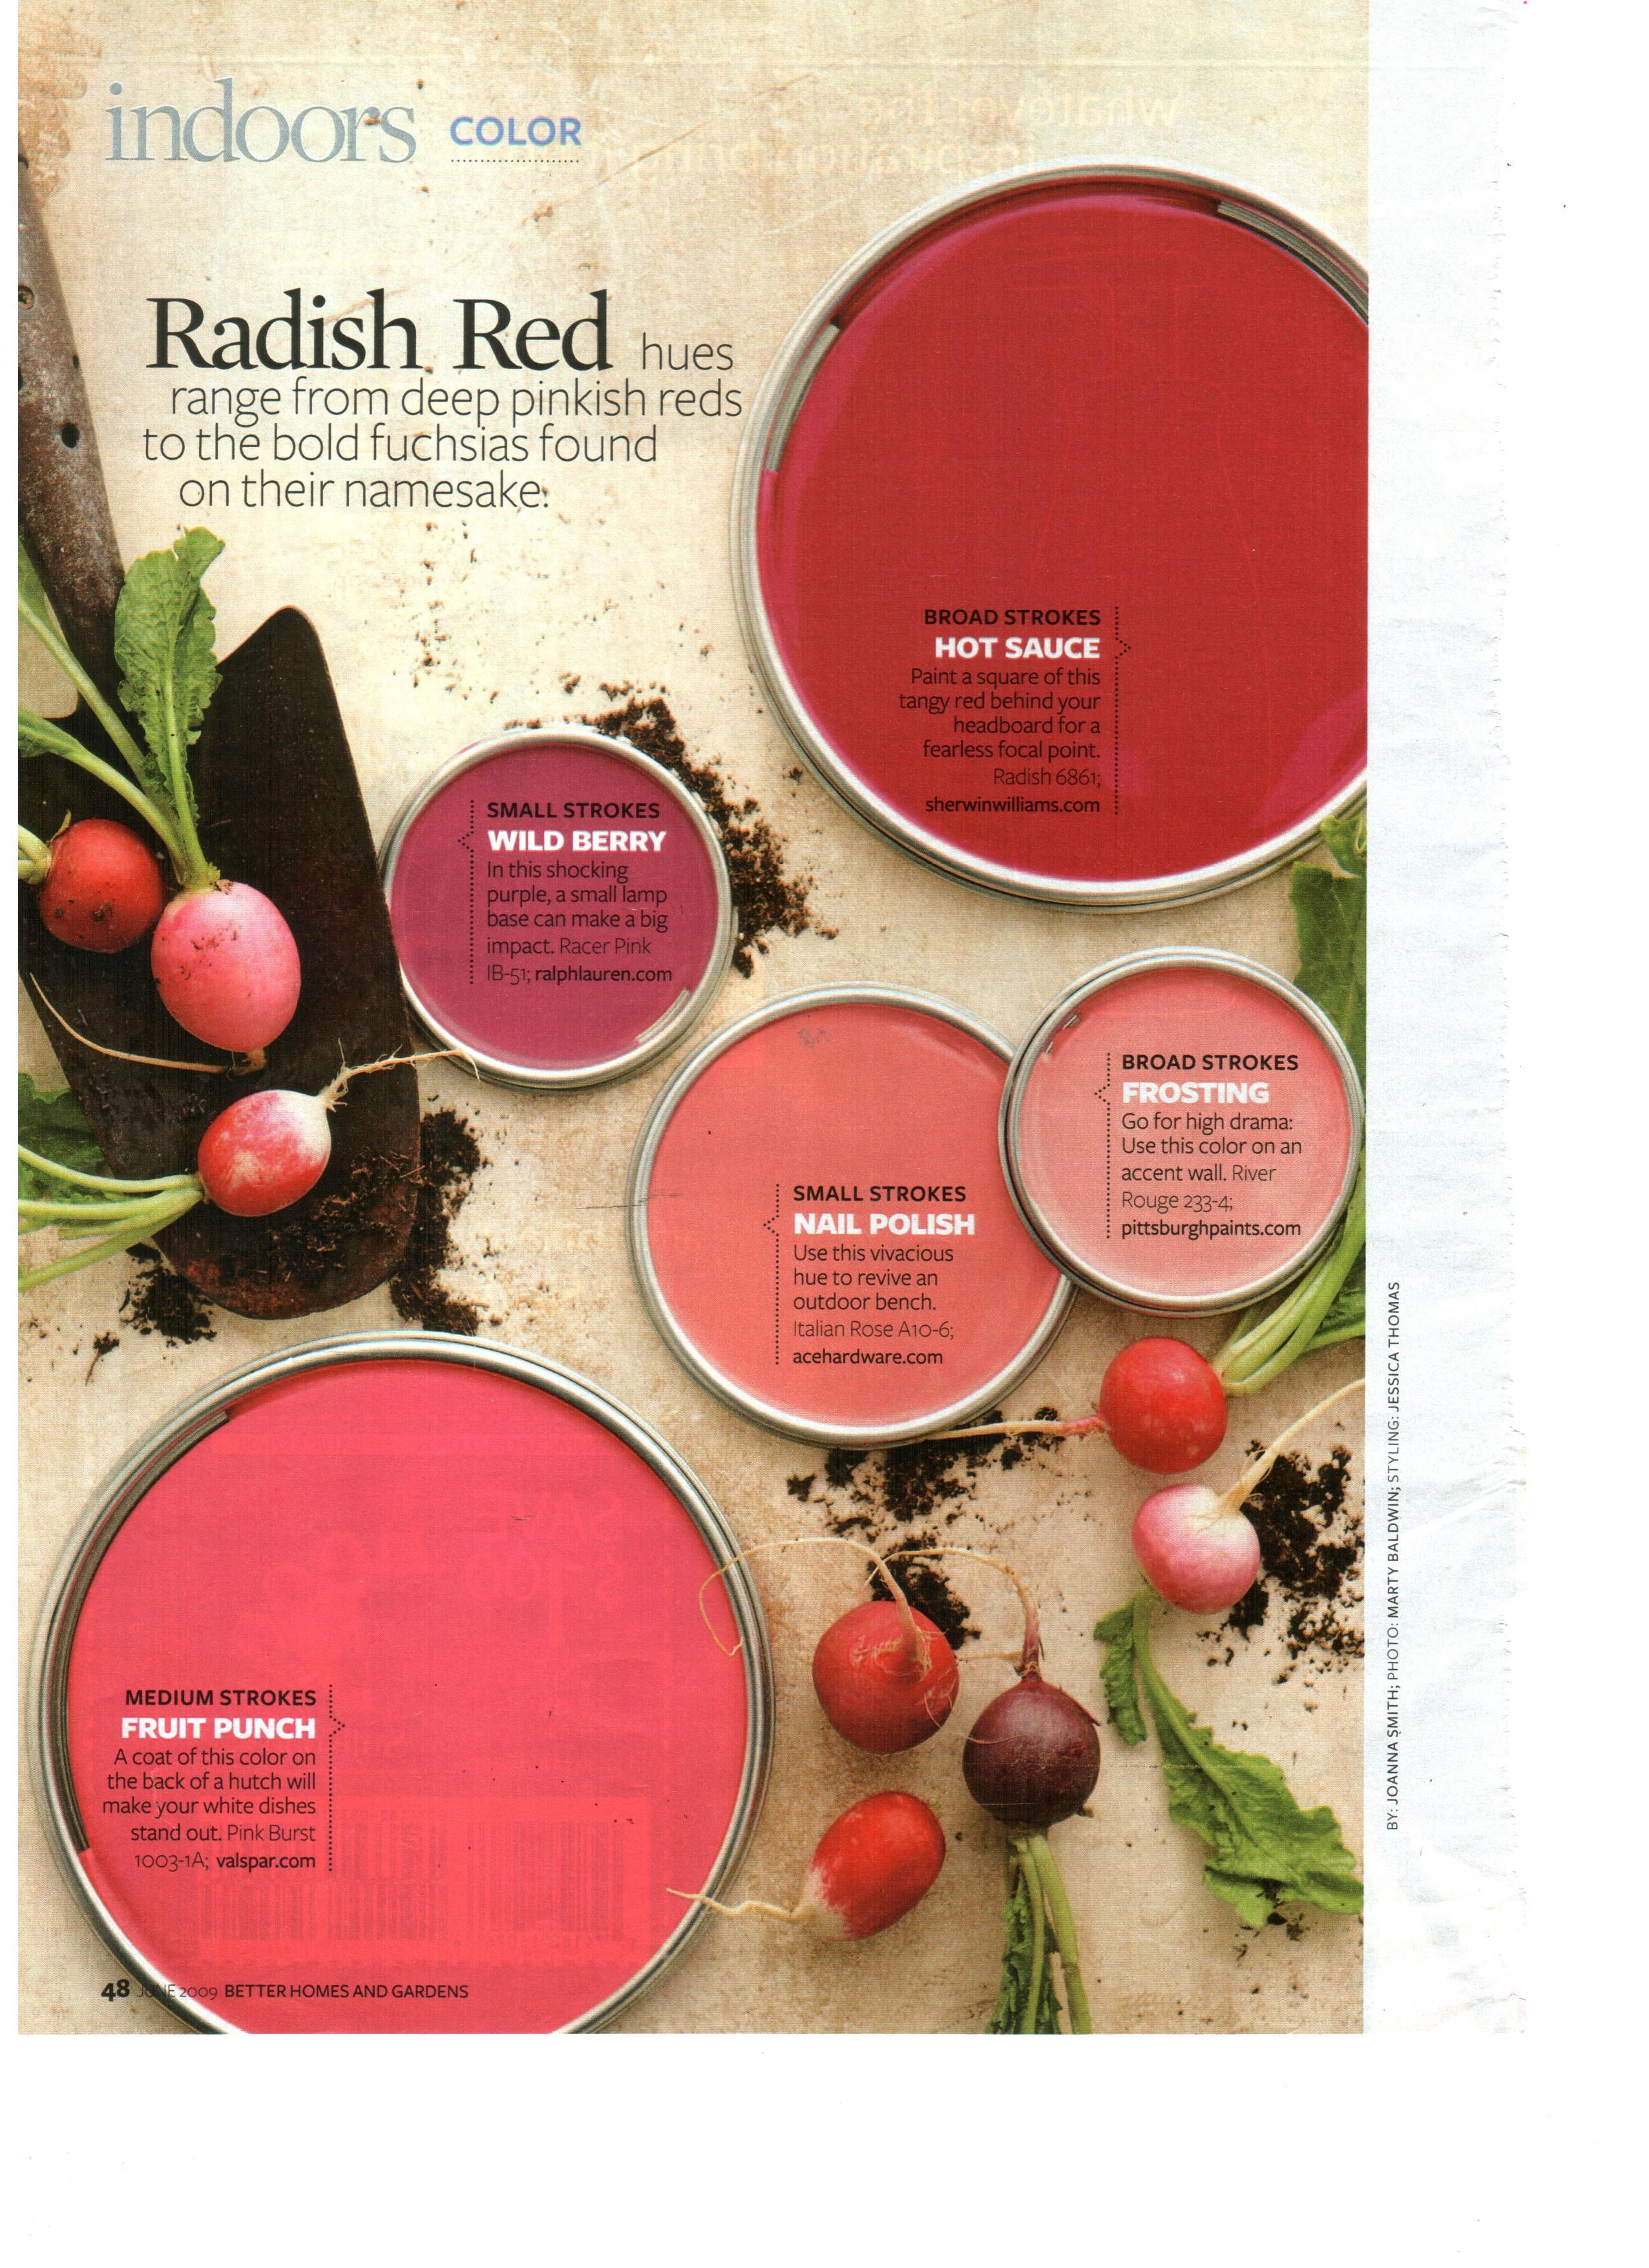 Radish Red Paint Colors Via Bhg Nail Polish Is The Color I D Like To Do Behind My Bed Ax An A Backdrop Wall Faux Headboard Would Go Well